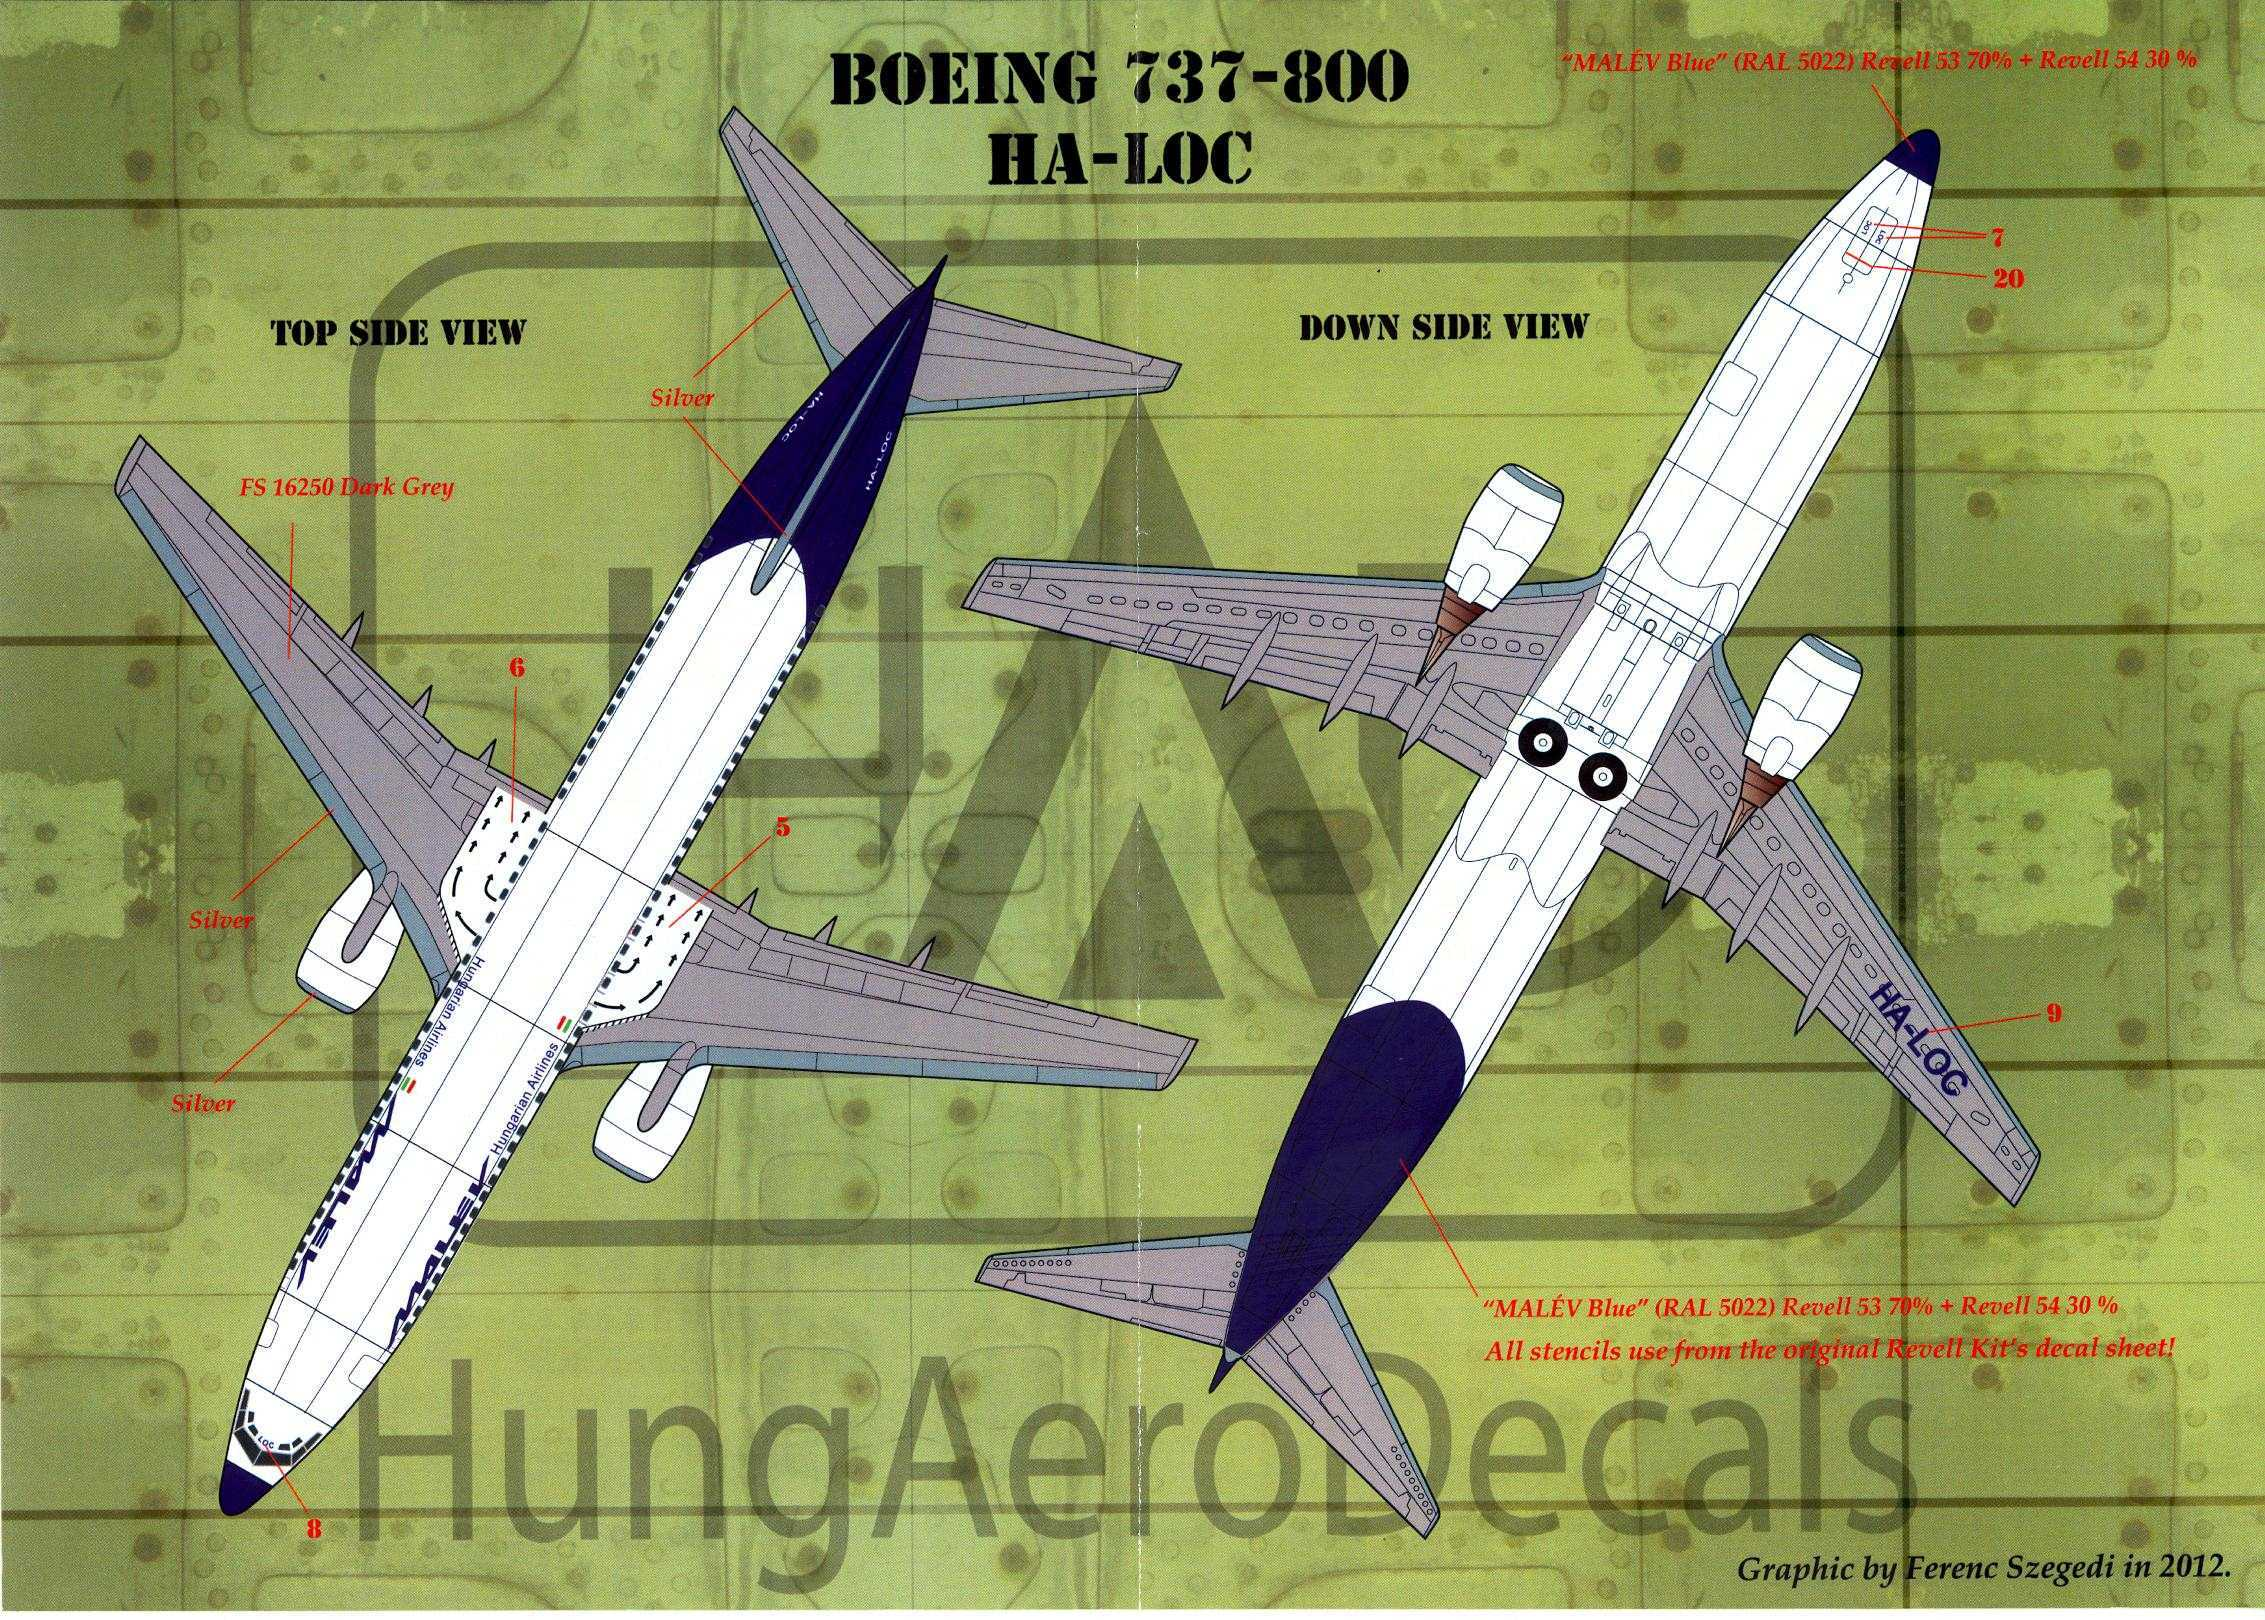 Hungarian Aero Decals 1//144 BOEING 737-200 Malev Airlines